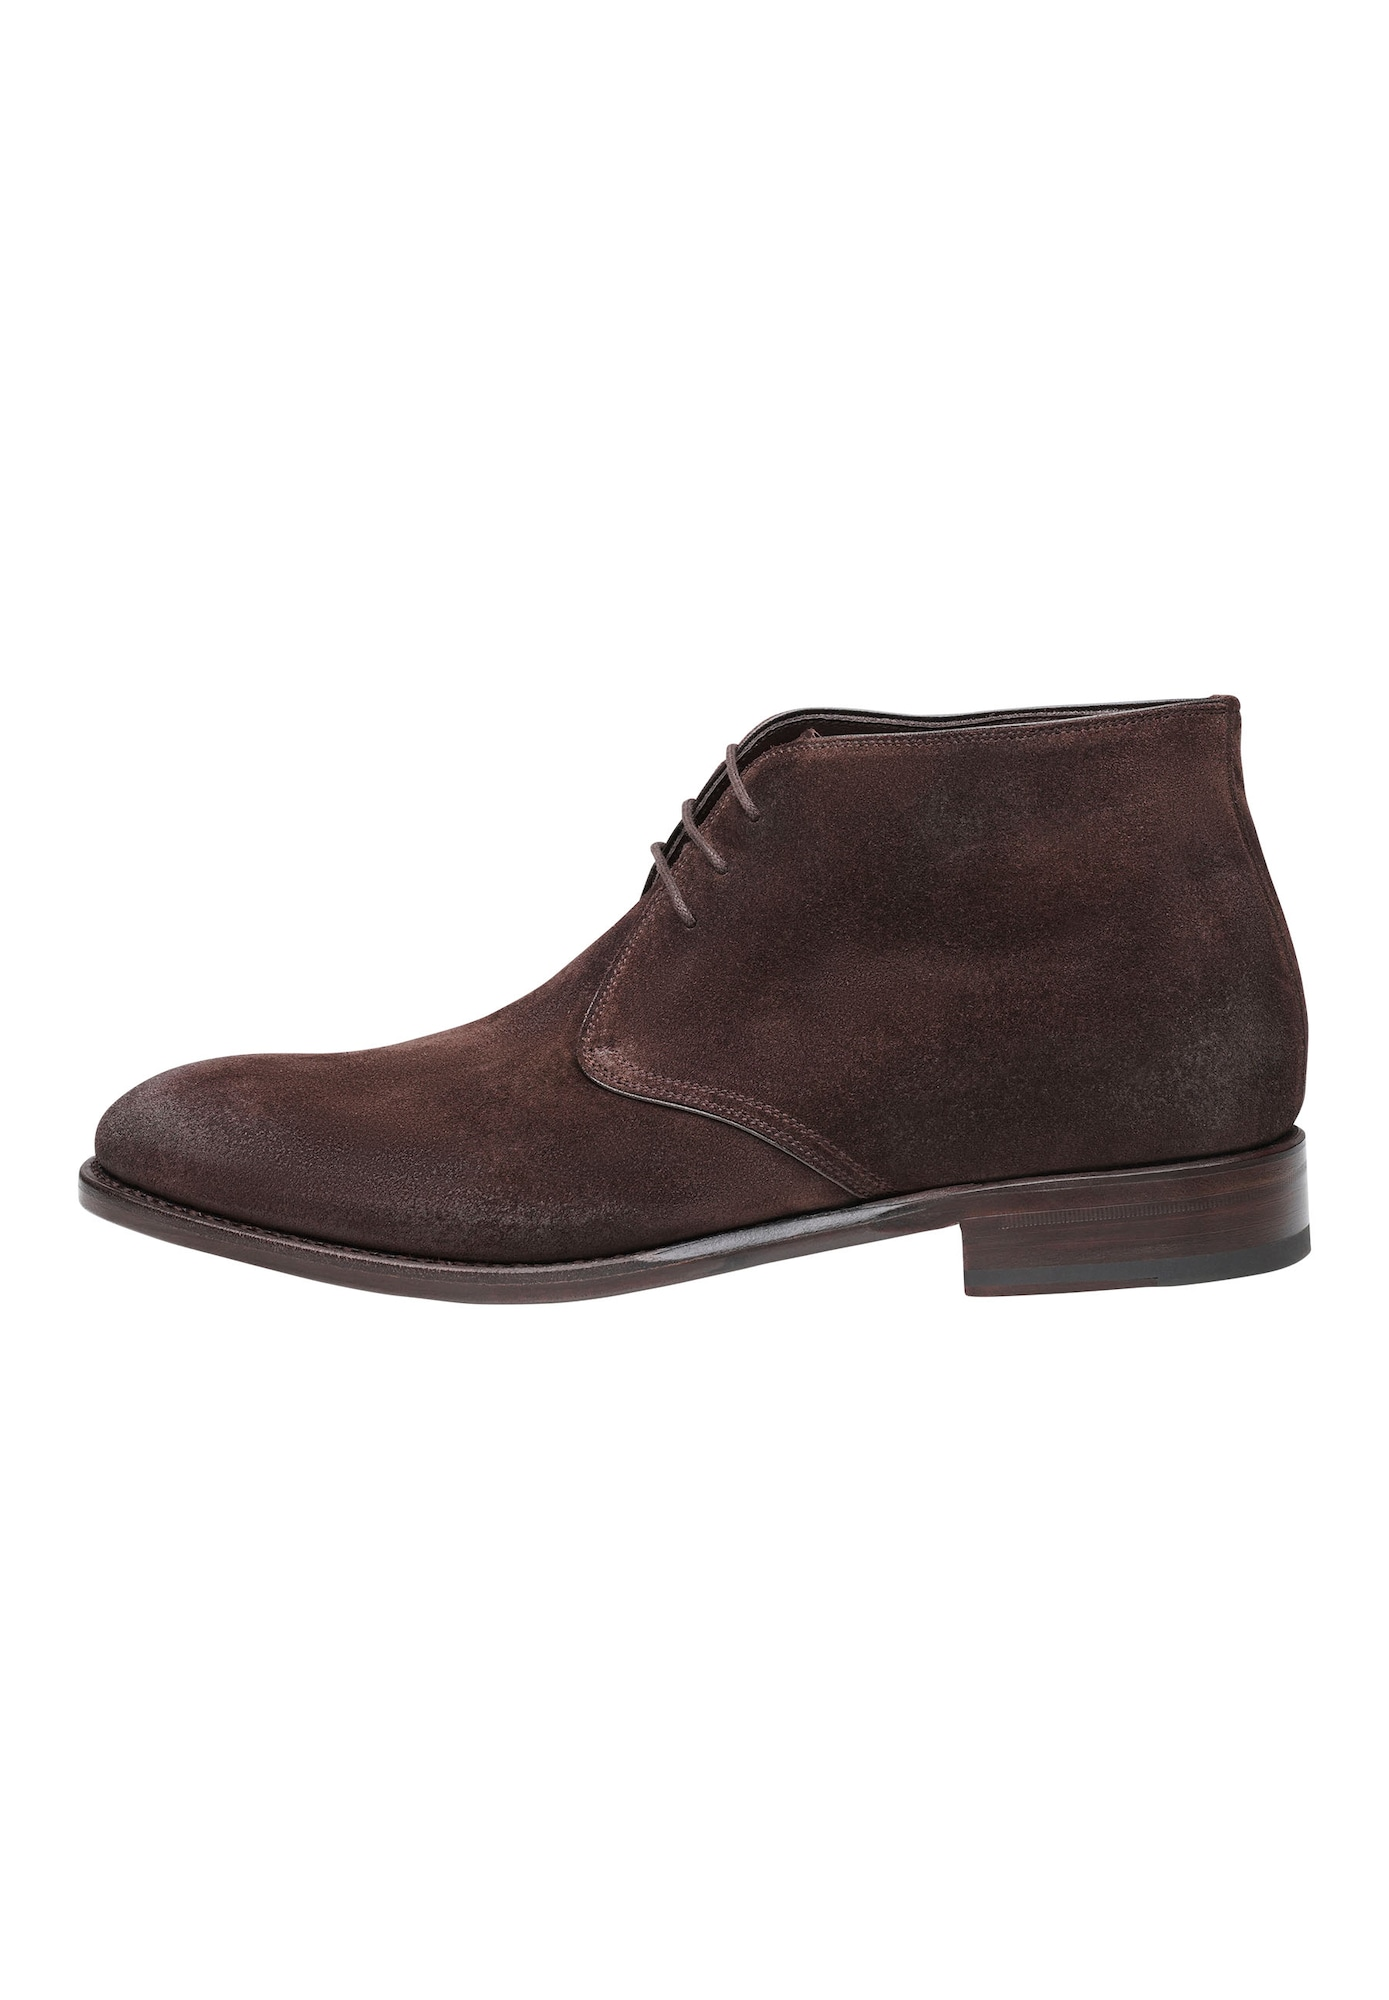 Veterboots 'No. ' SHOEPASSION